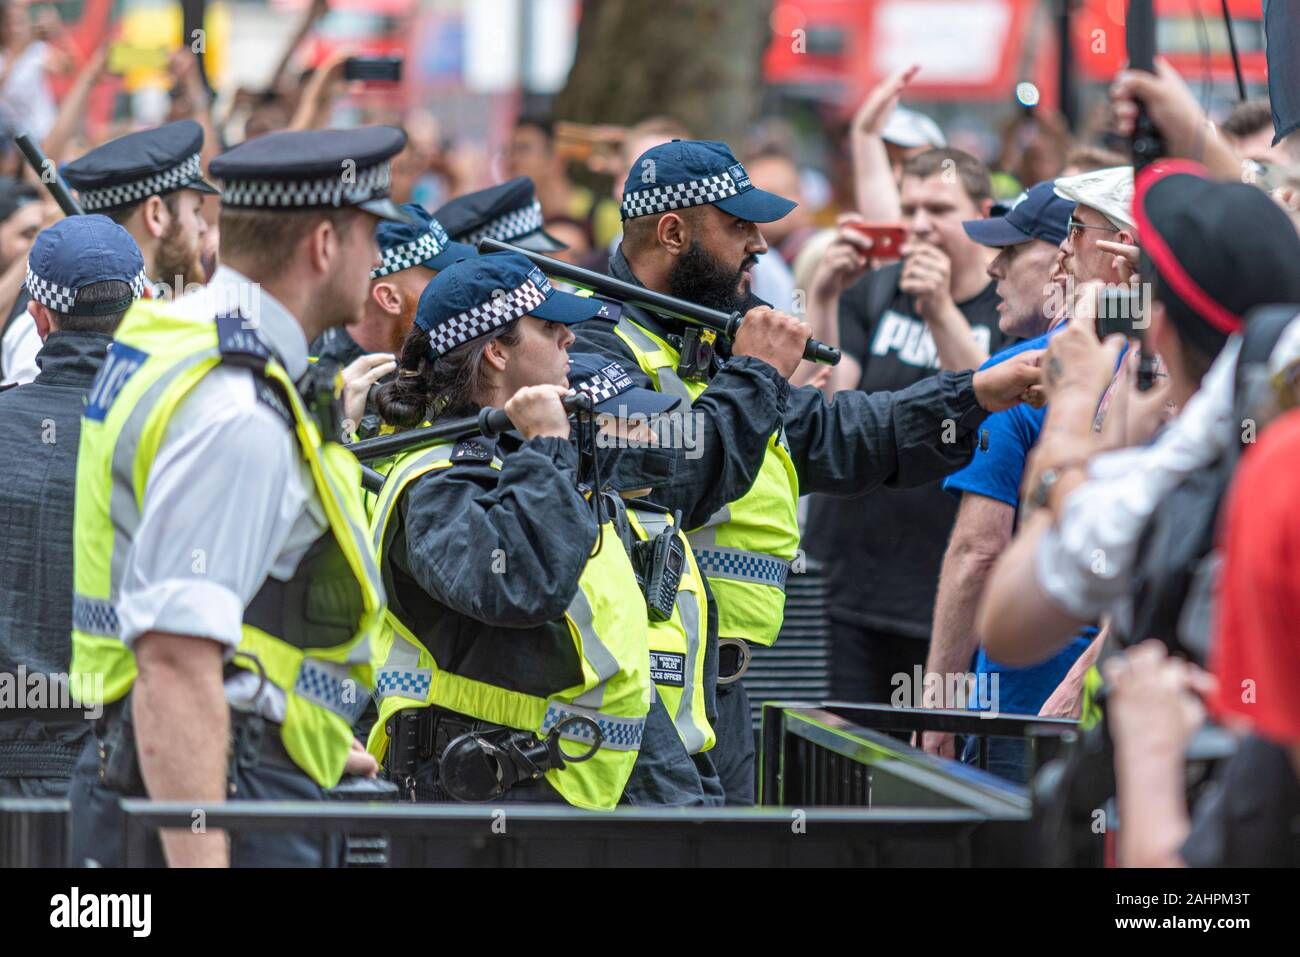 police-officers-including-a-male-officer-with-muslim-features-defending-downing-street-whitehall-london-uk-with-batons-raised-during-brexit-rally-2AHPM3T.jpg